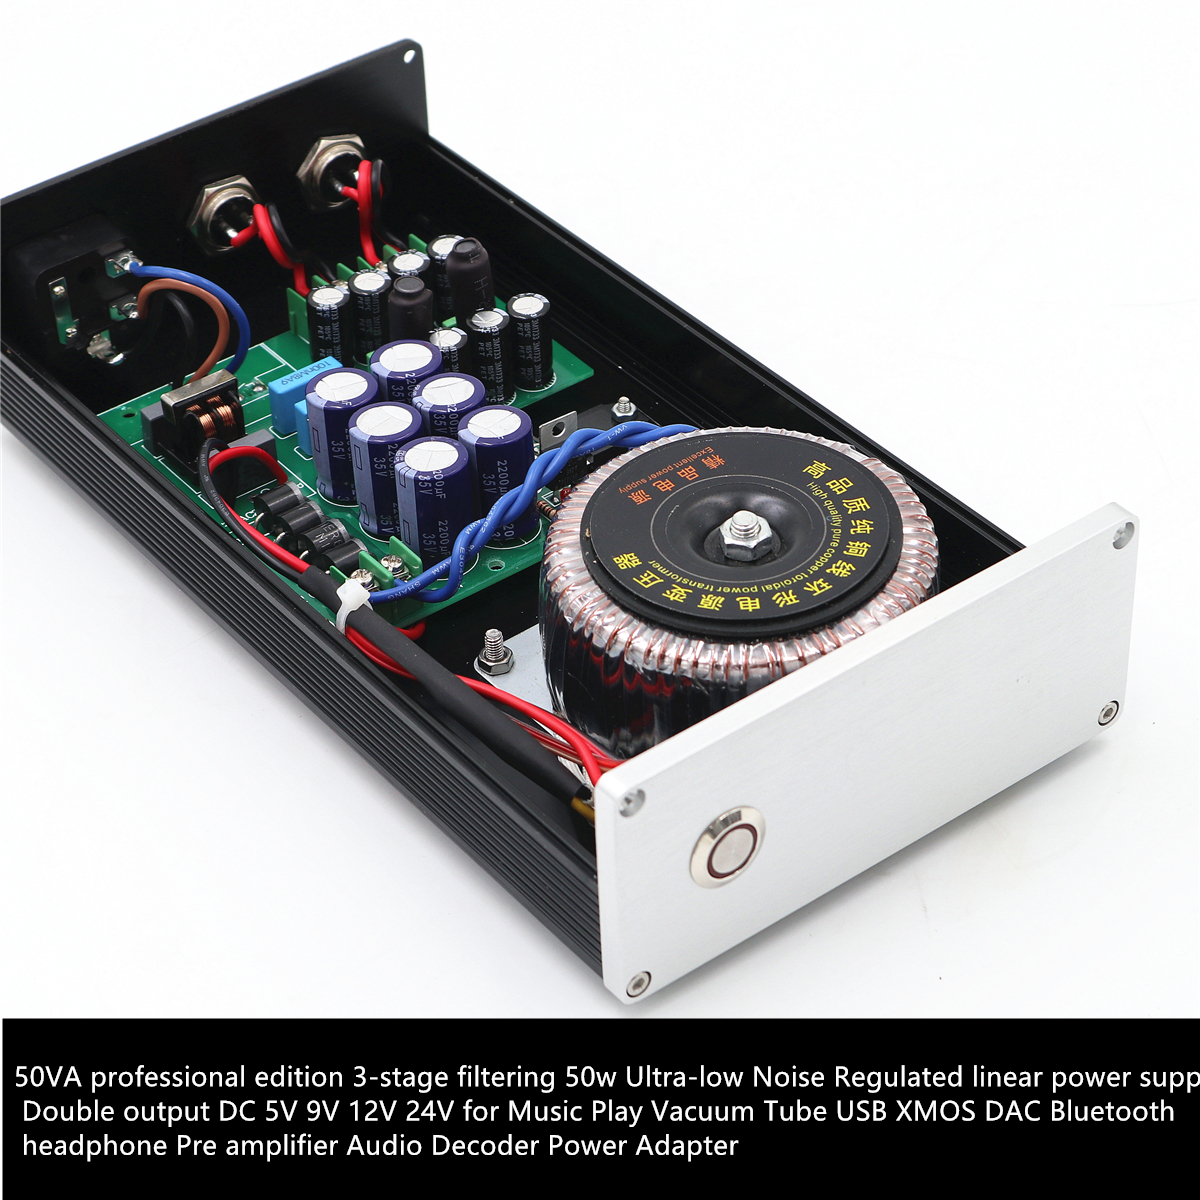 50w professional edition 3 stage filtering 50VA HIFI Ultra low Noise Regulated linear power supply Double